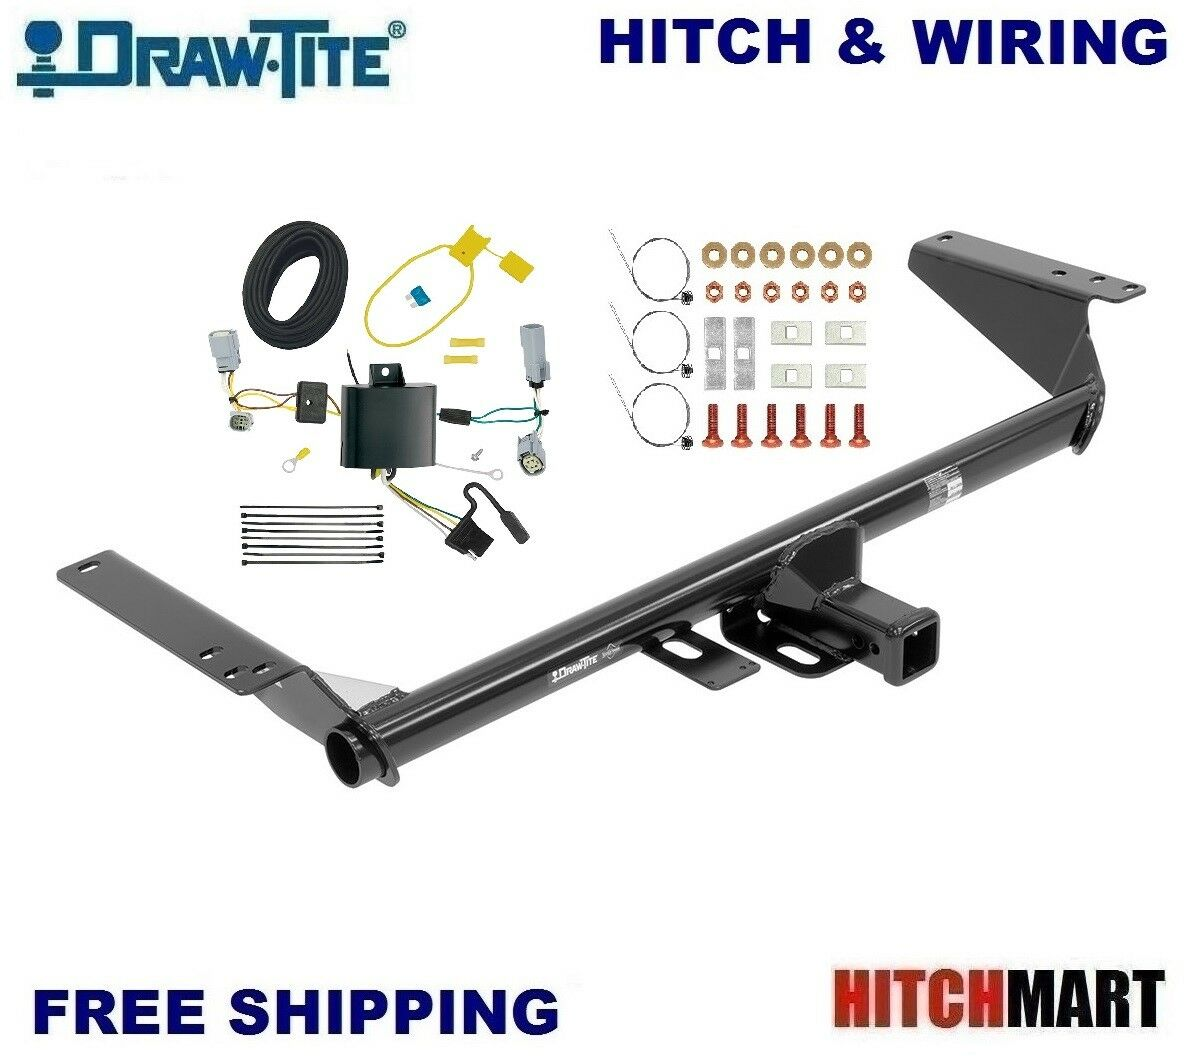 Class 3 Trailer Hitch Wiring For 2017 2018 Chrysler Pacifica Lx How To Wire A 1 Of 4only 2 Available